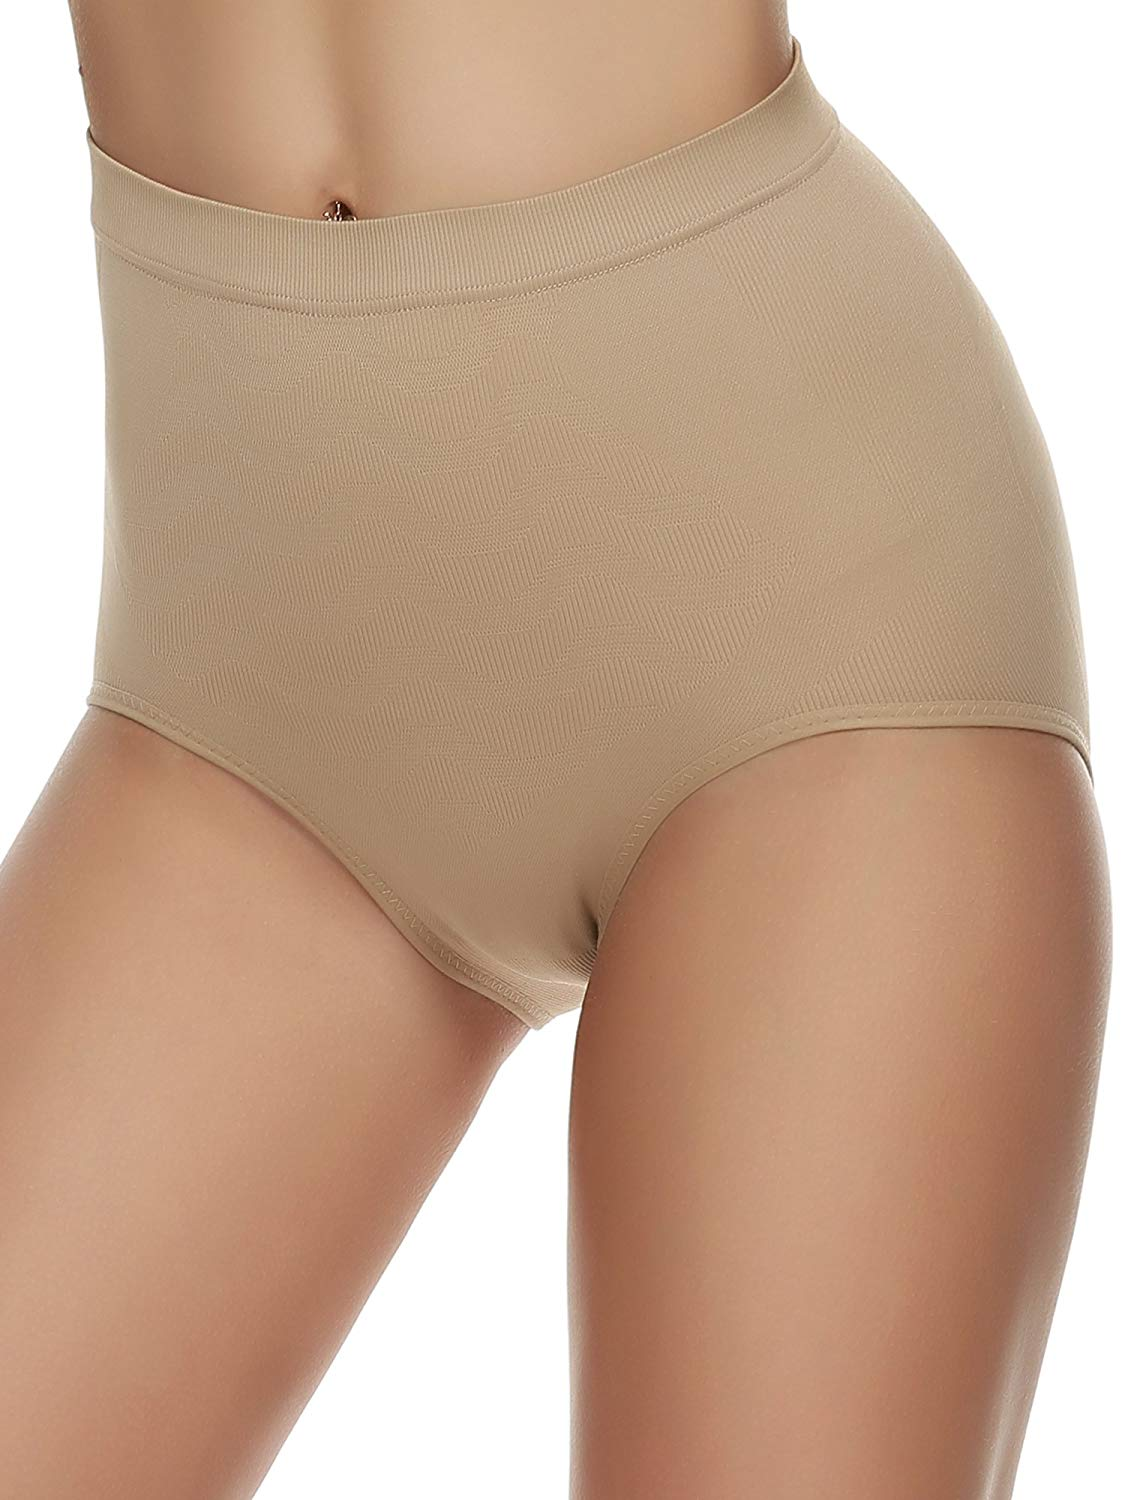 Cheap Tuck In Panties, find Tuck In Panties deals on line at